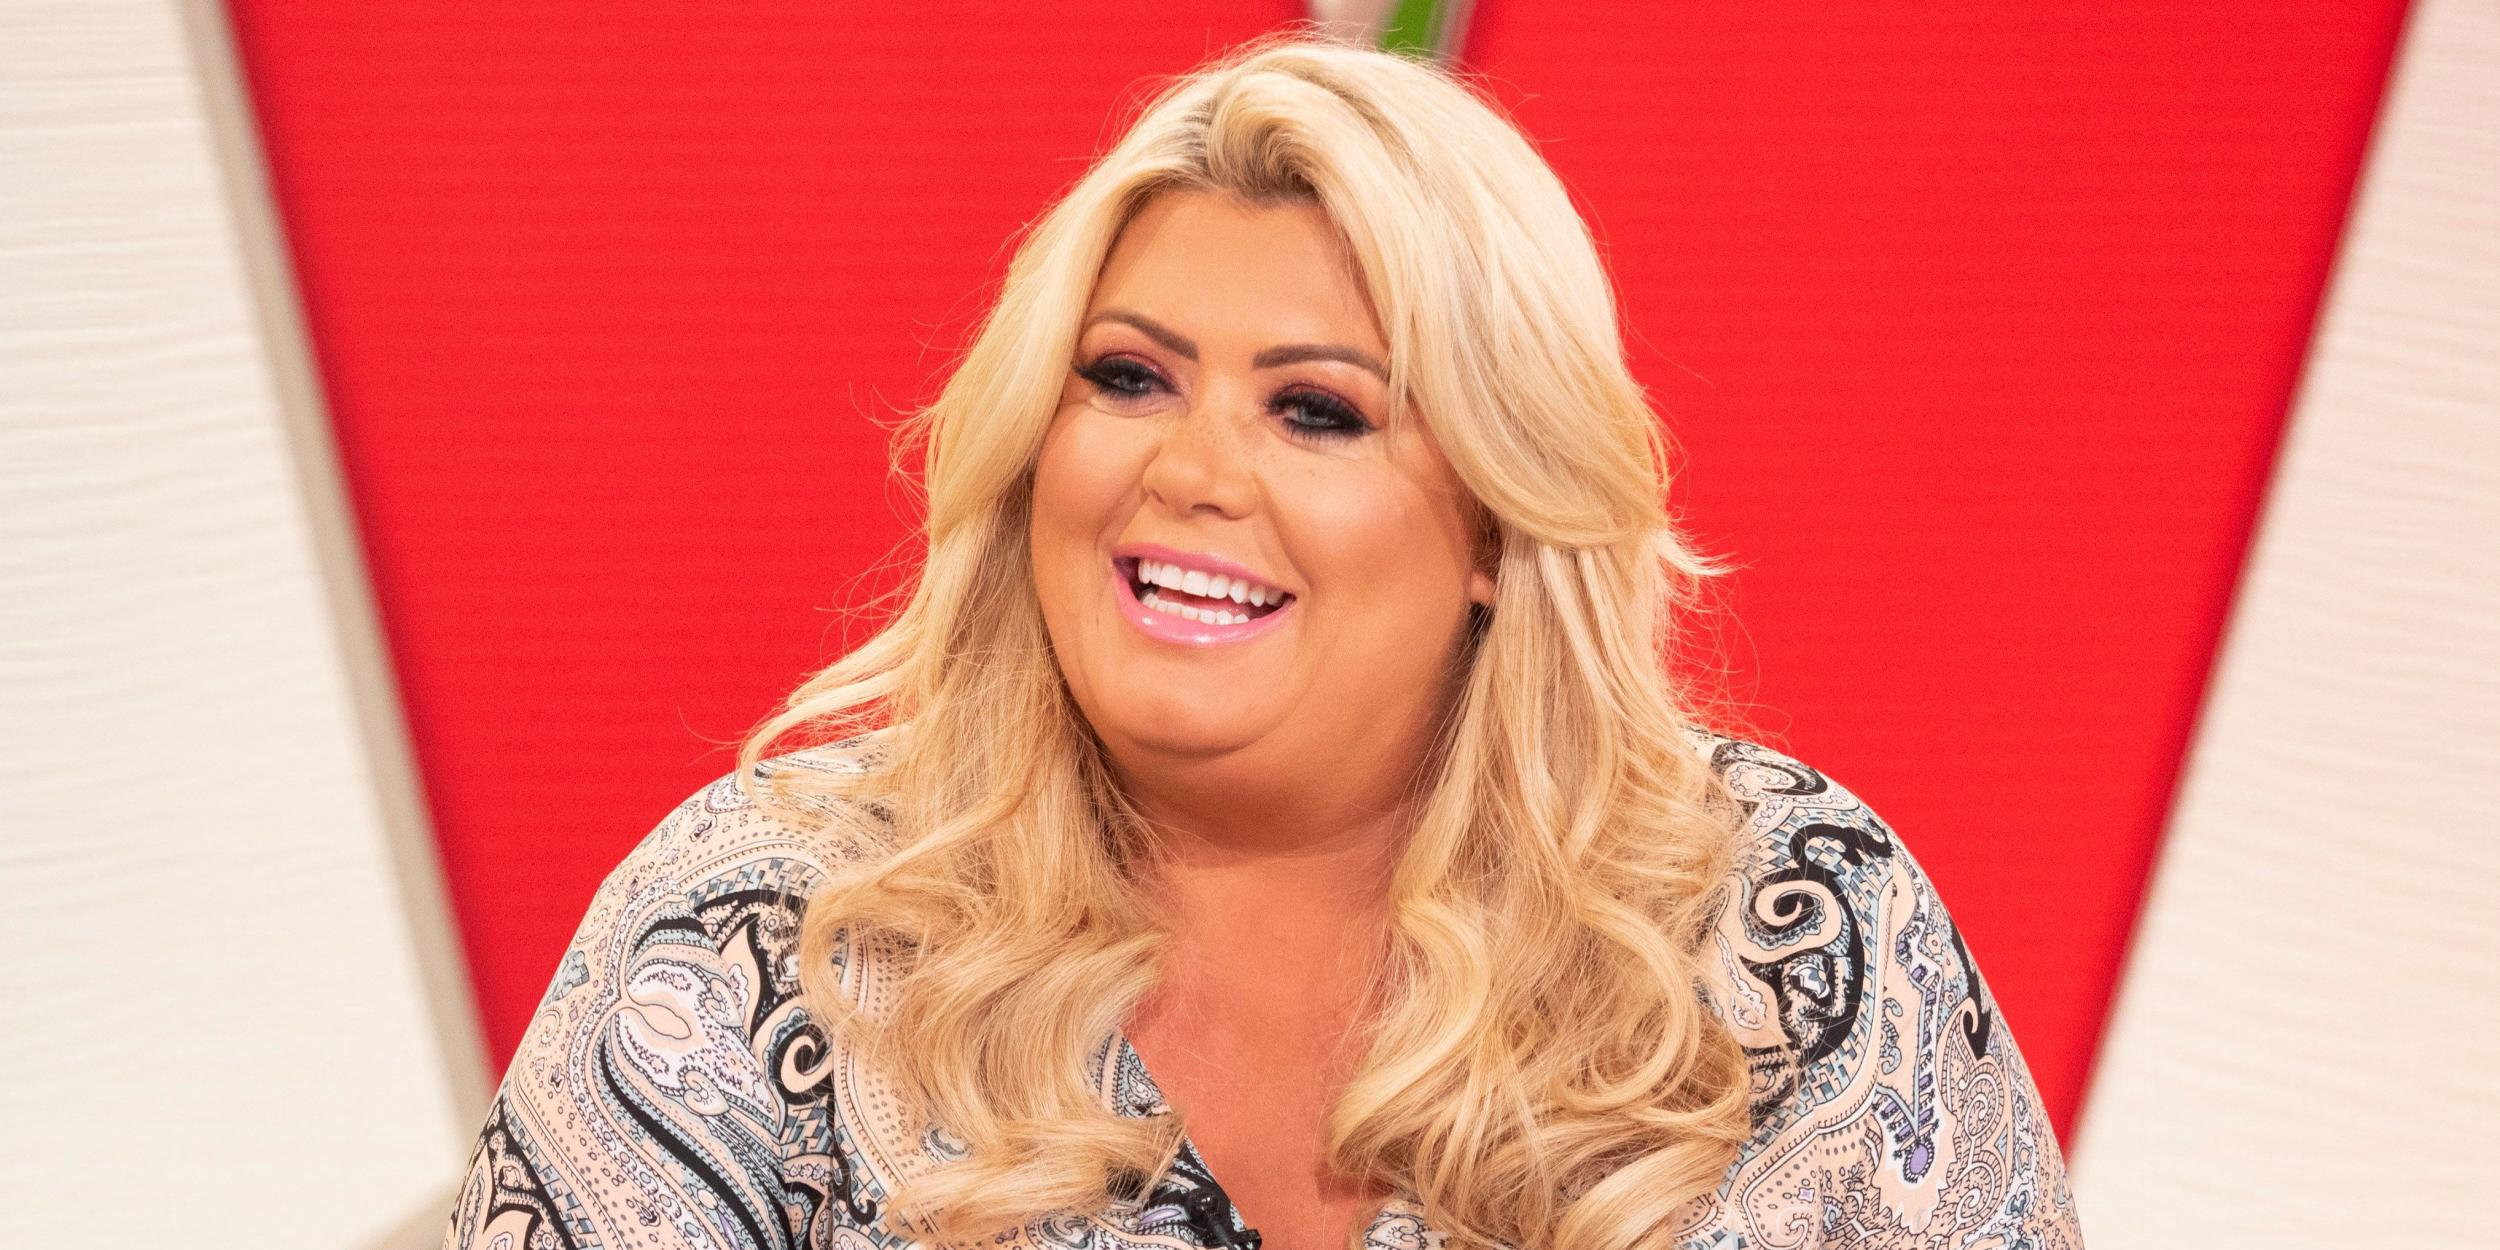 Gemma Collins Nude Photos 3